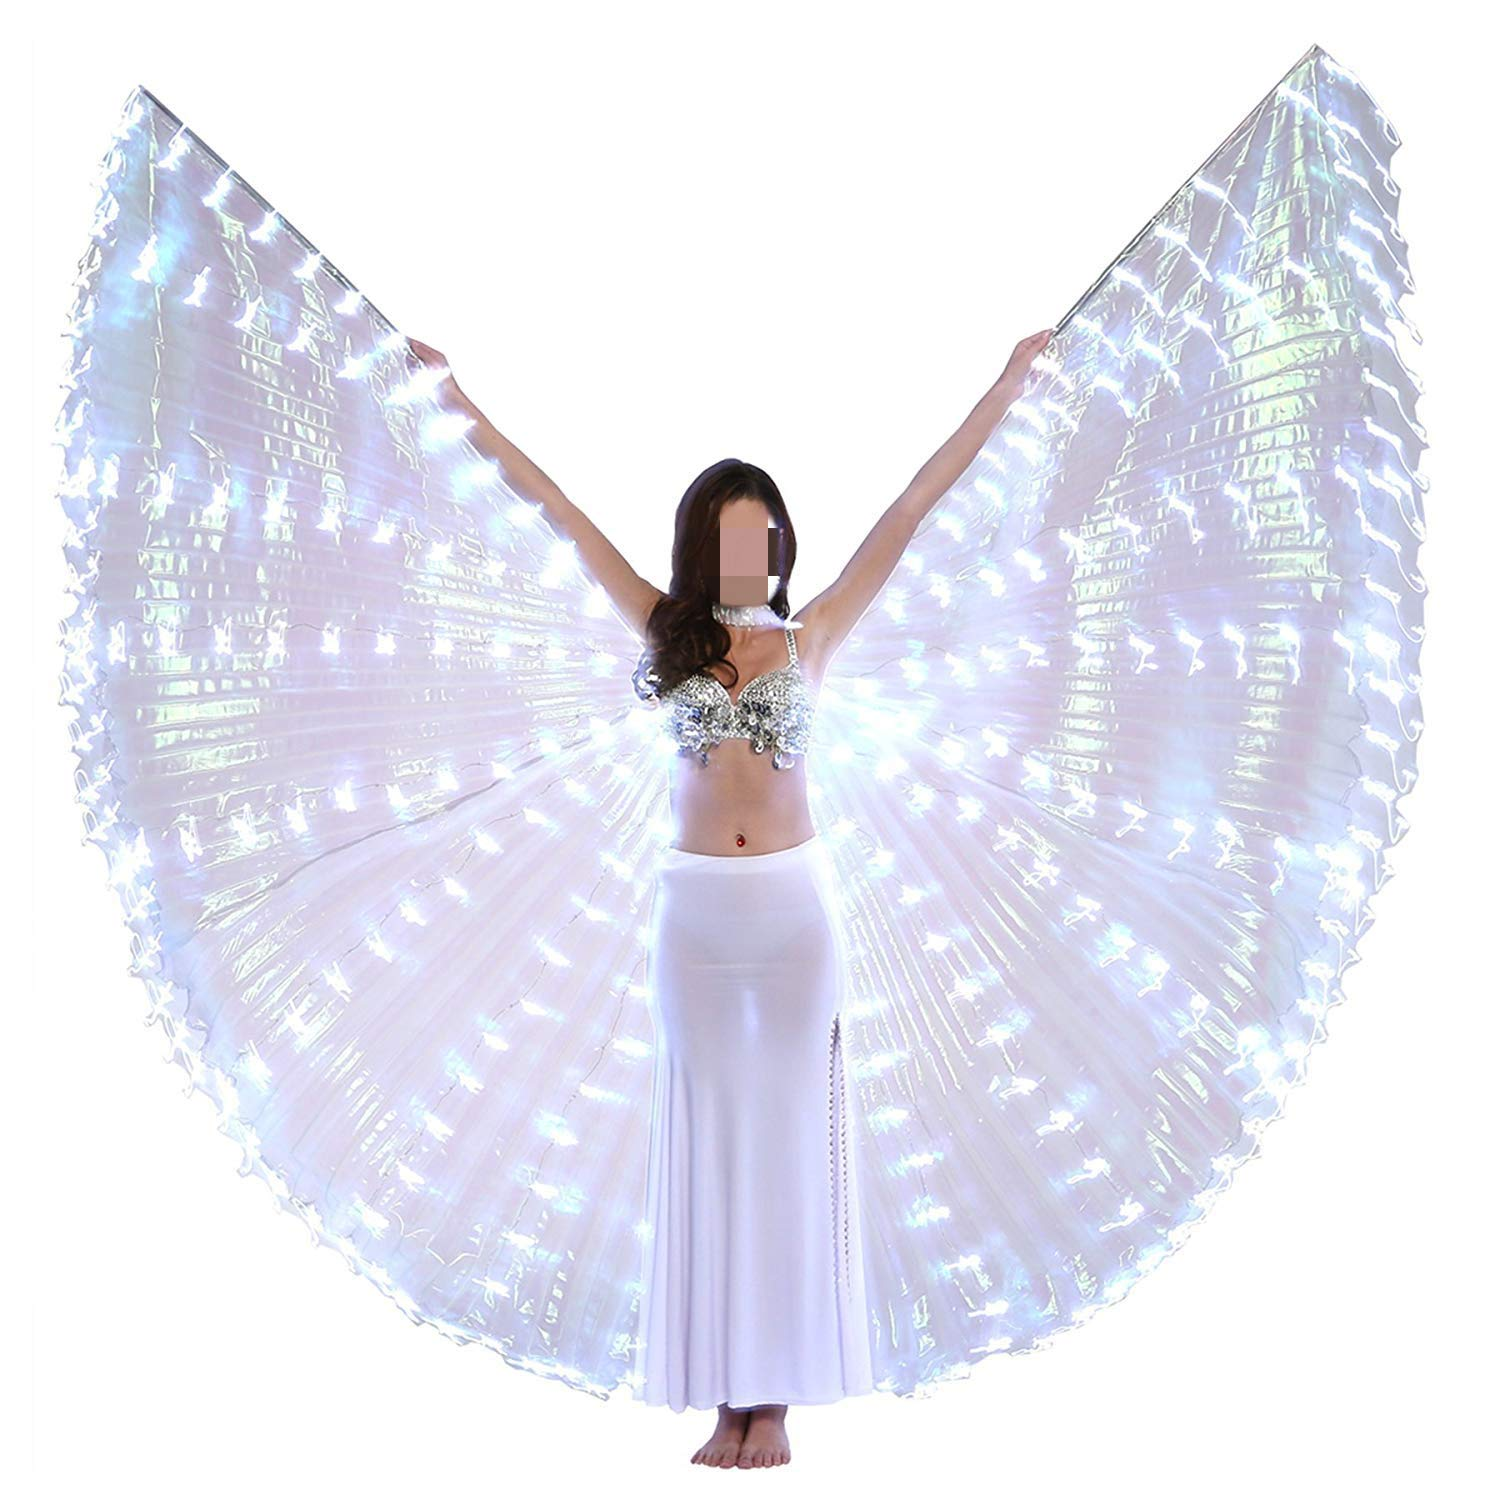 xiaoxiaoland εїз Belly Dance Wing with Rods-360 Degree Angel Wings with Portable Telescopic Sticks for Adults and Child,White by xiaoxiaoland